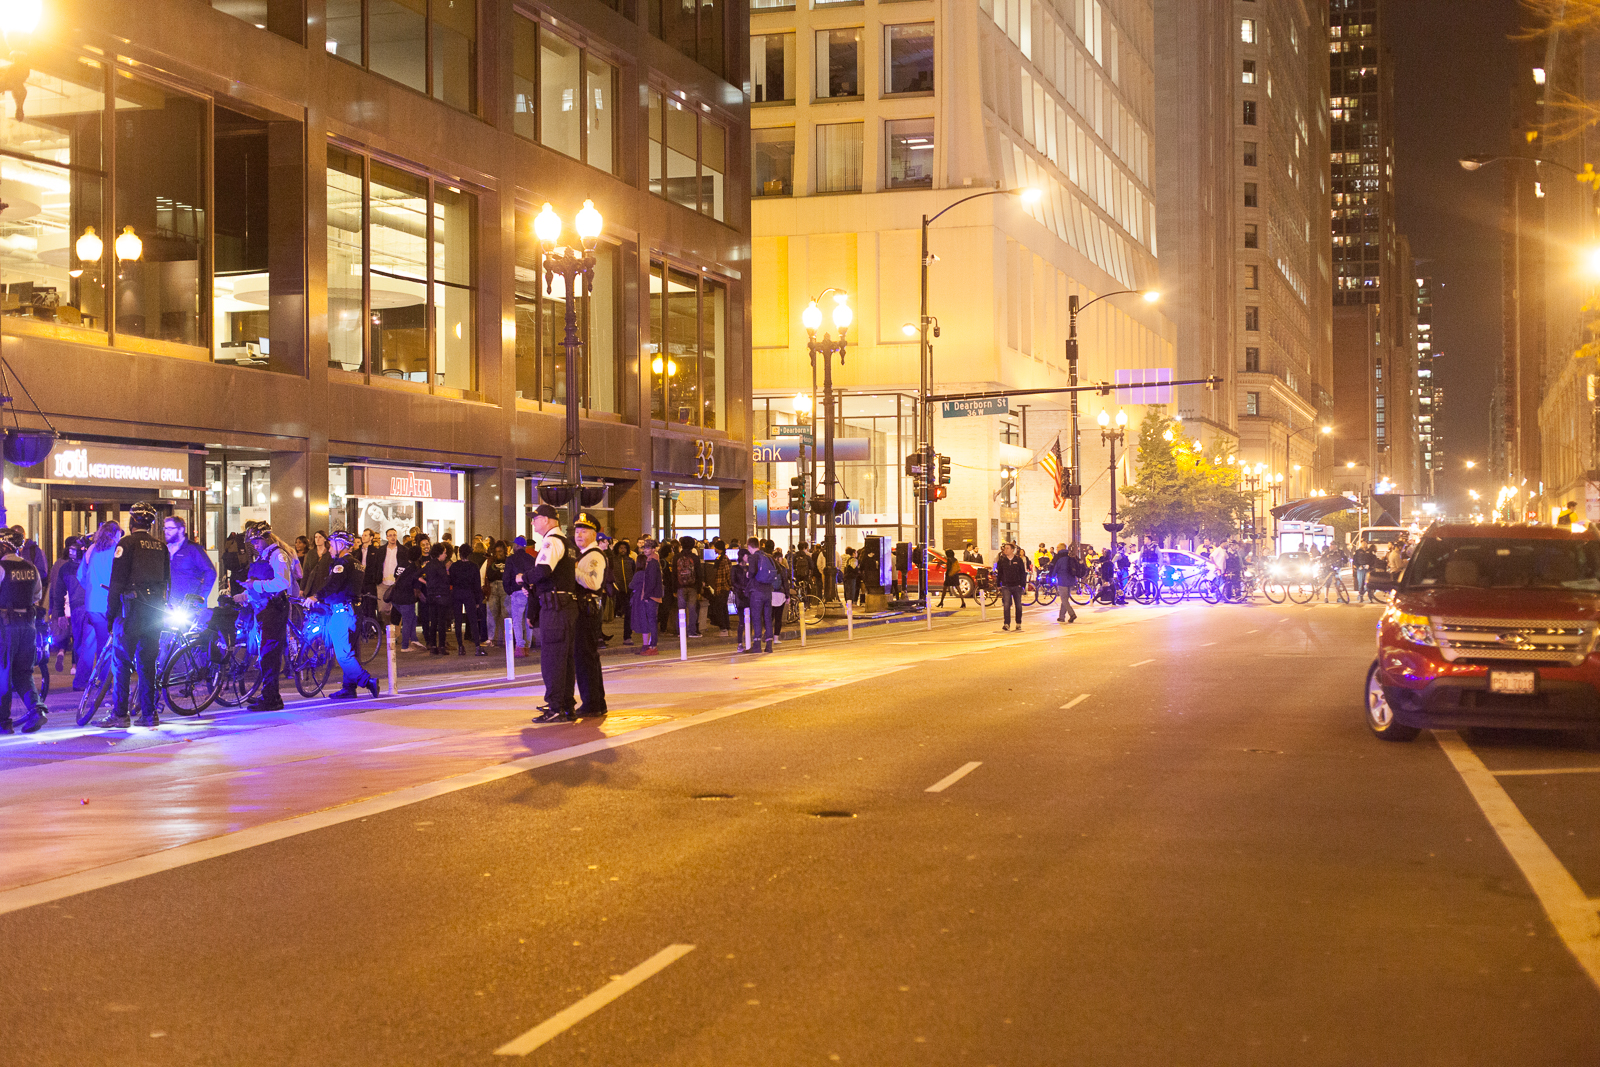 By the time the parade crossed Dearborn, it had spread out enough to fit onto the sidewalk.